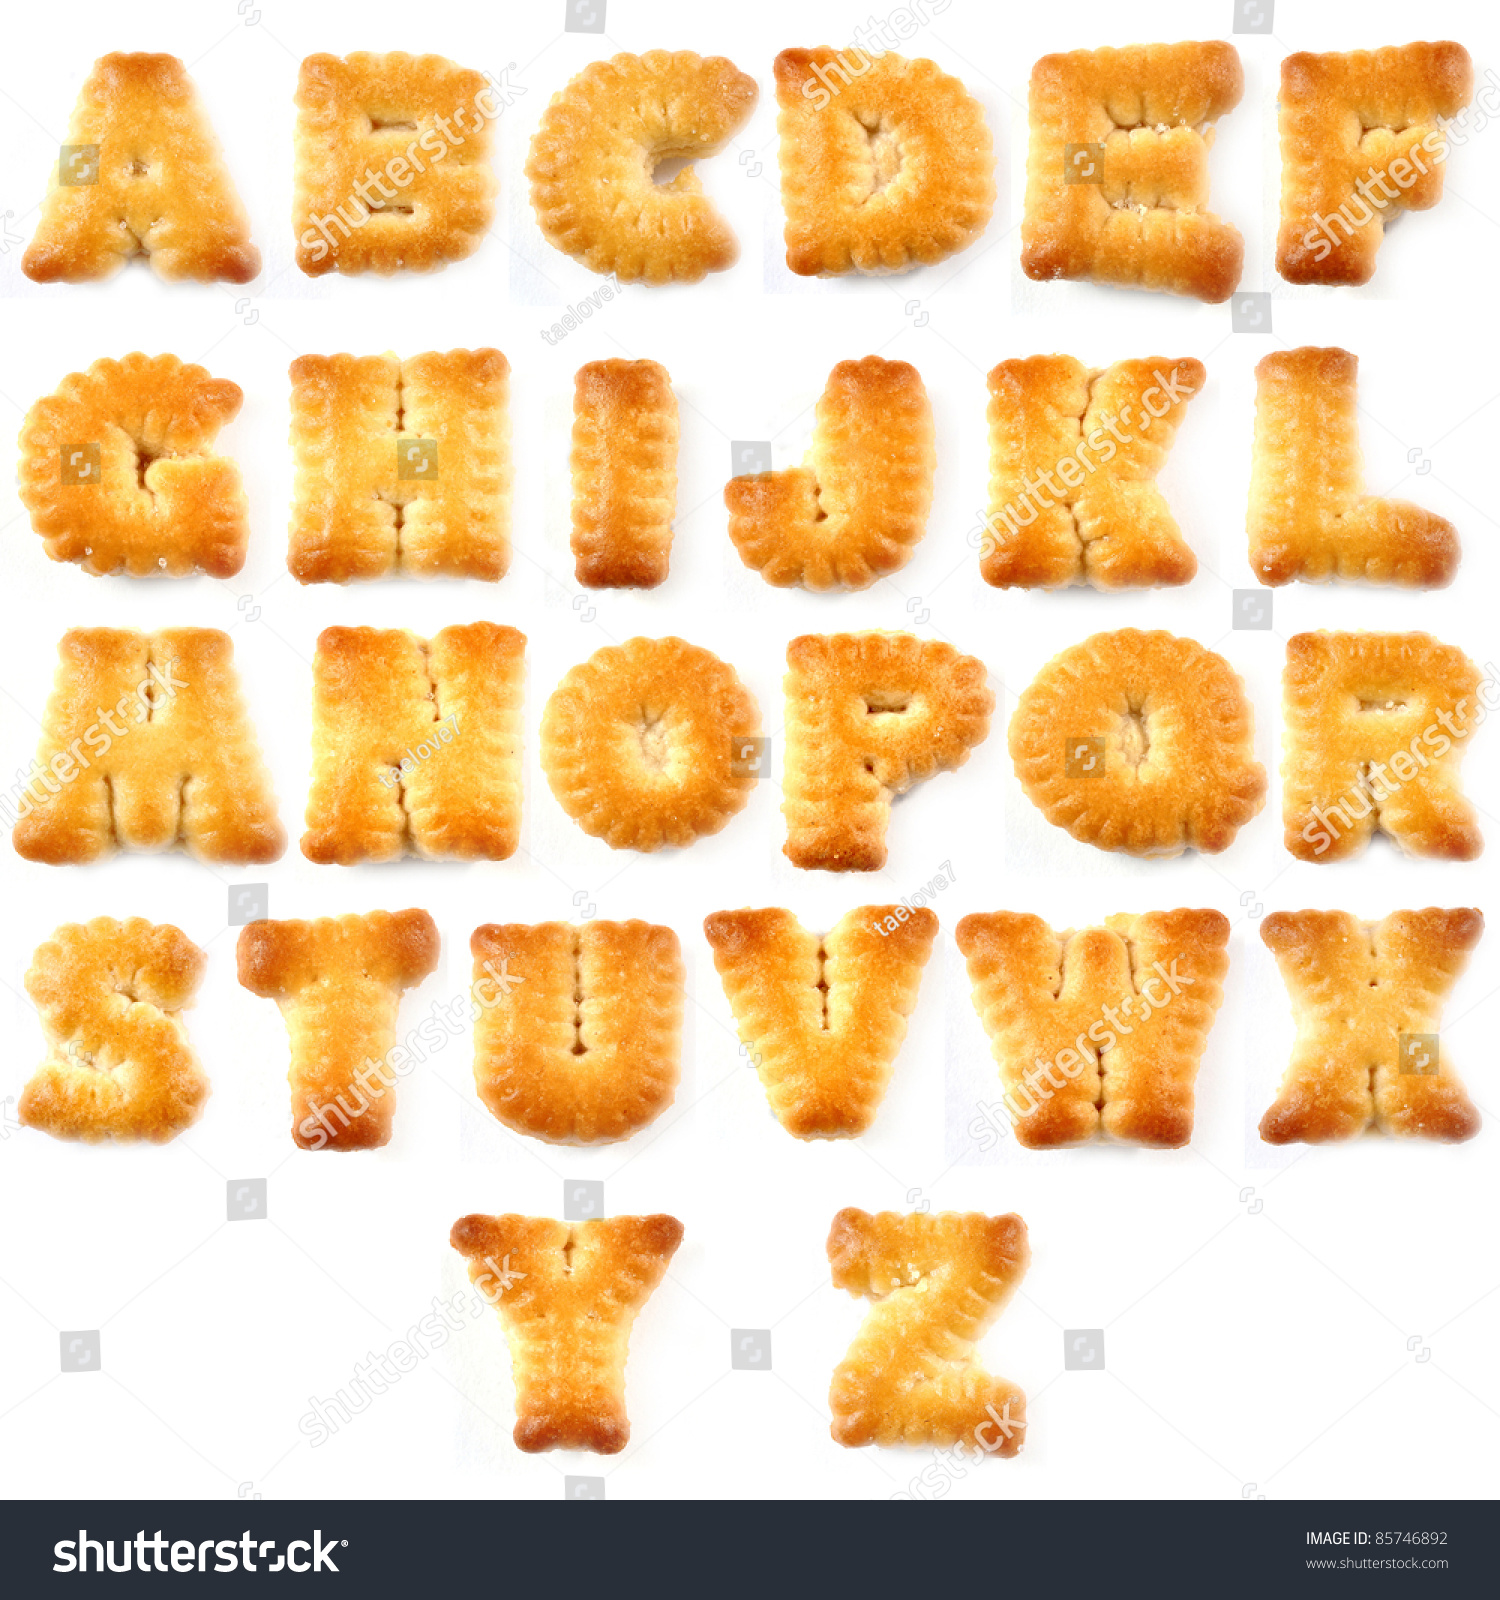 biscuits letters words az stock photo 85746892 shutterstock biscuits letters words a z